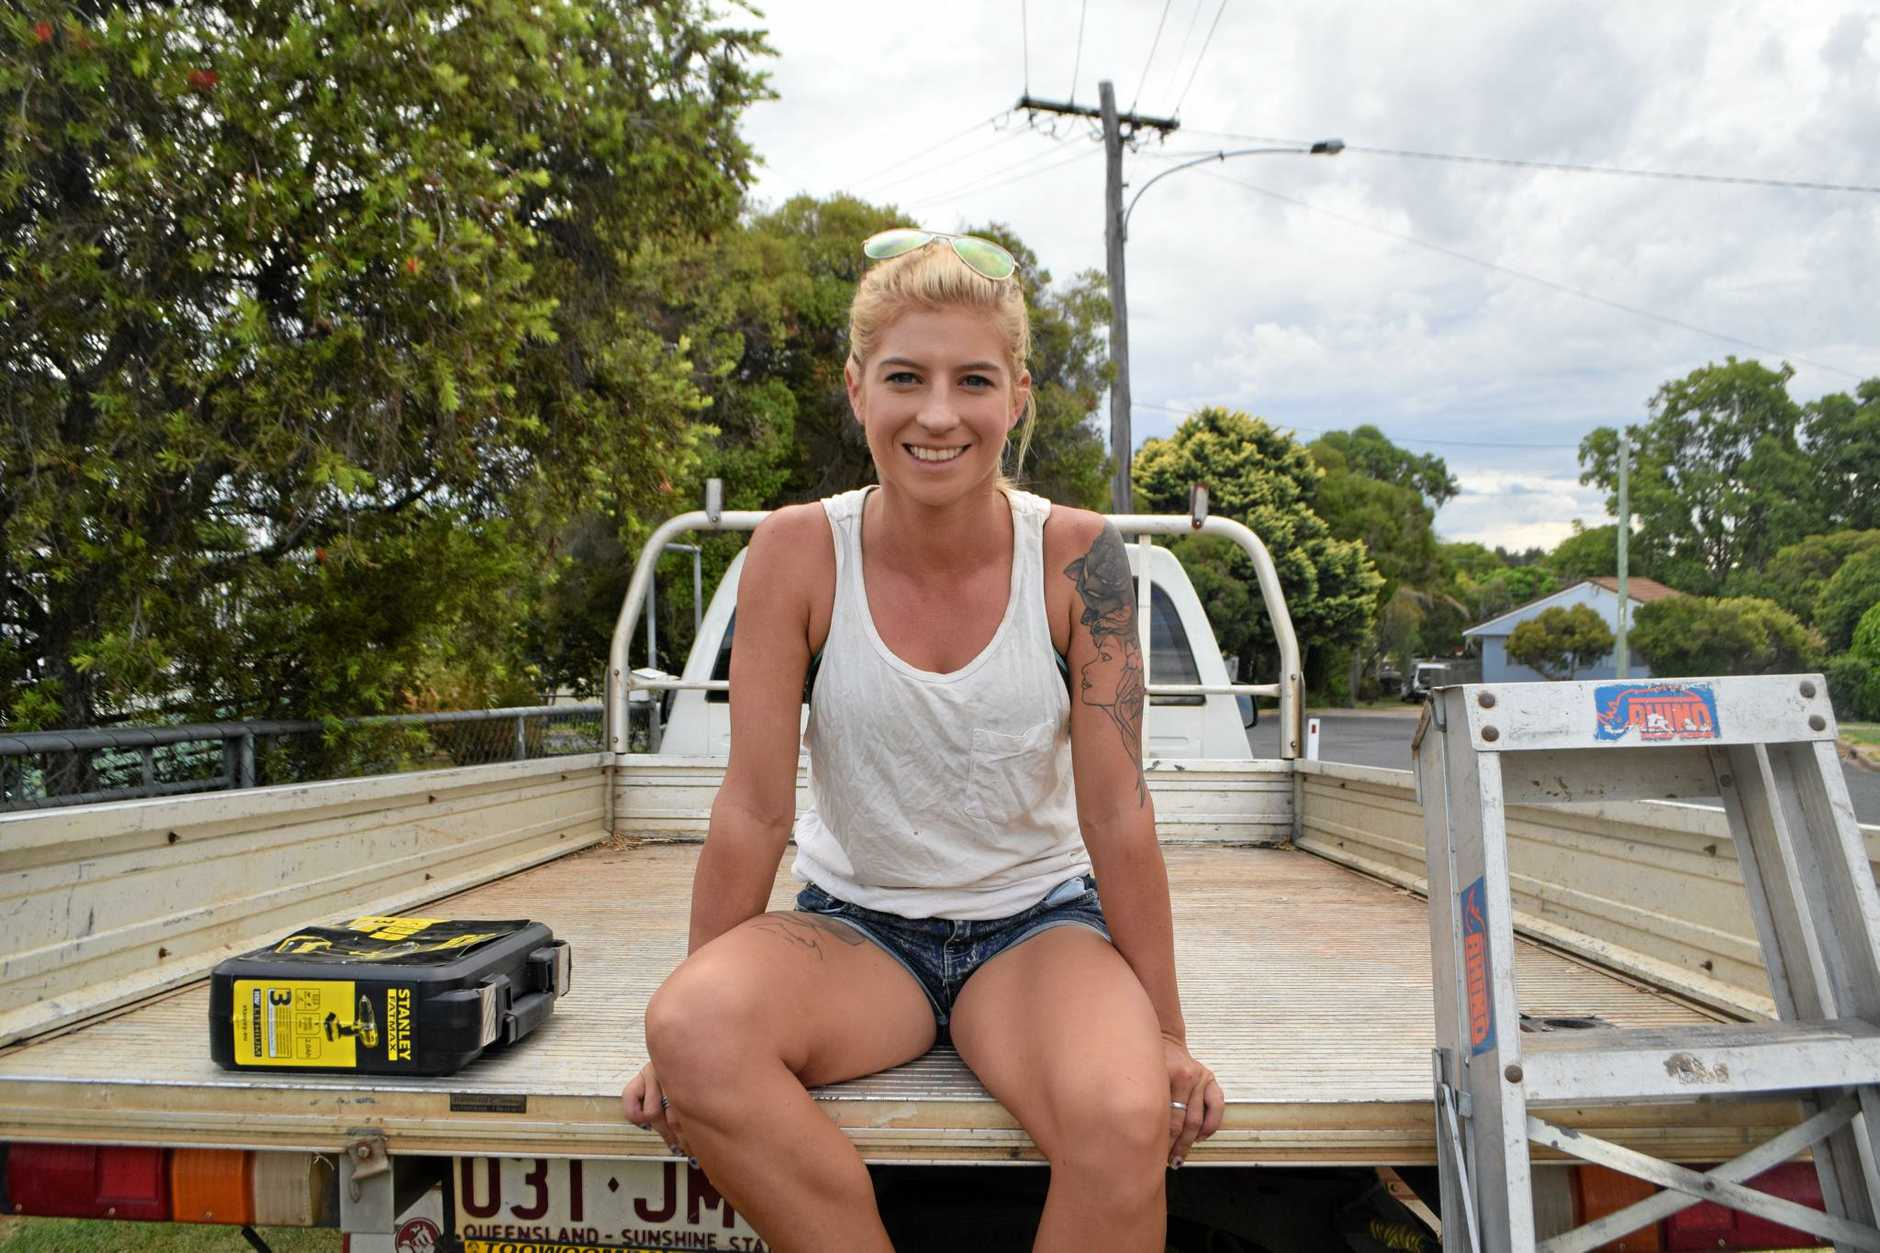 WOMAN'S WORLD: Apprentice carpenter Sarah McKendry quickly learnt to deal with sexism and doubters.